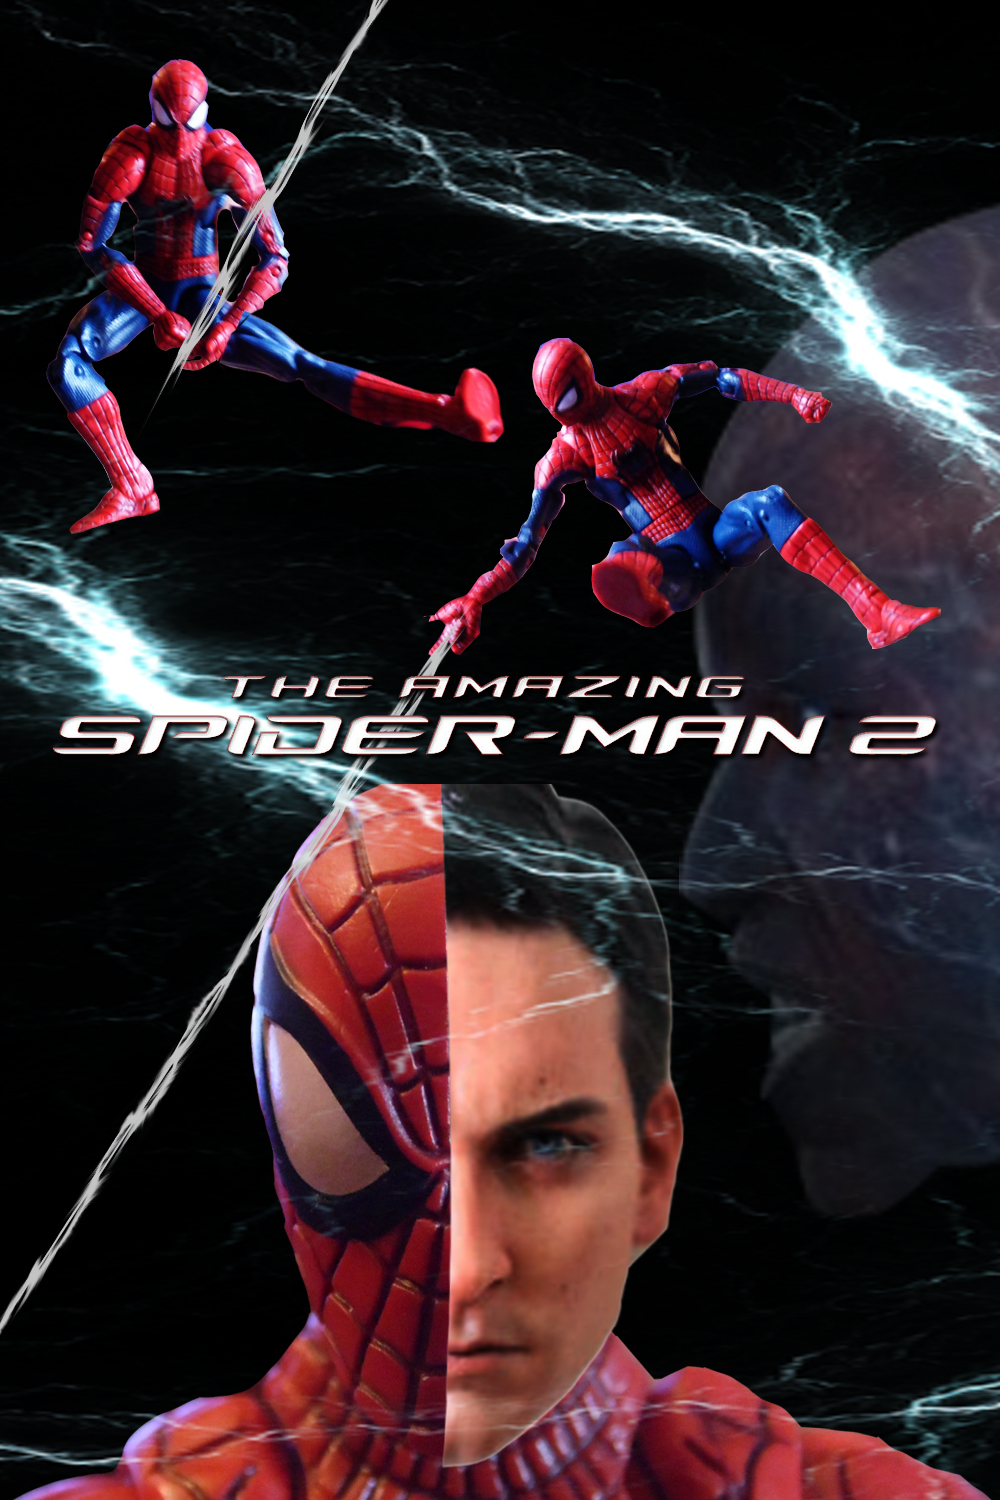 the amazing spiderman 2 movie poster by